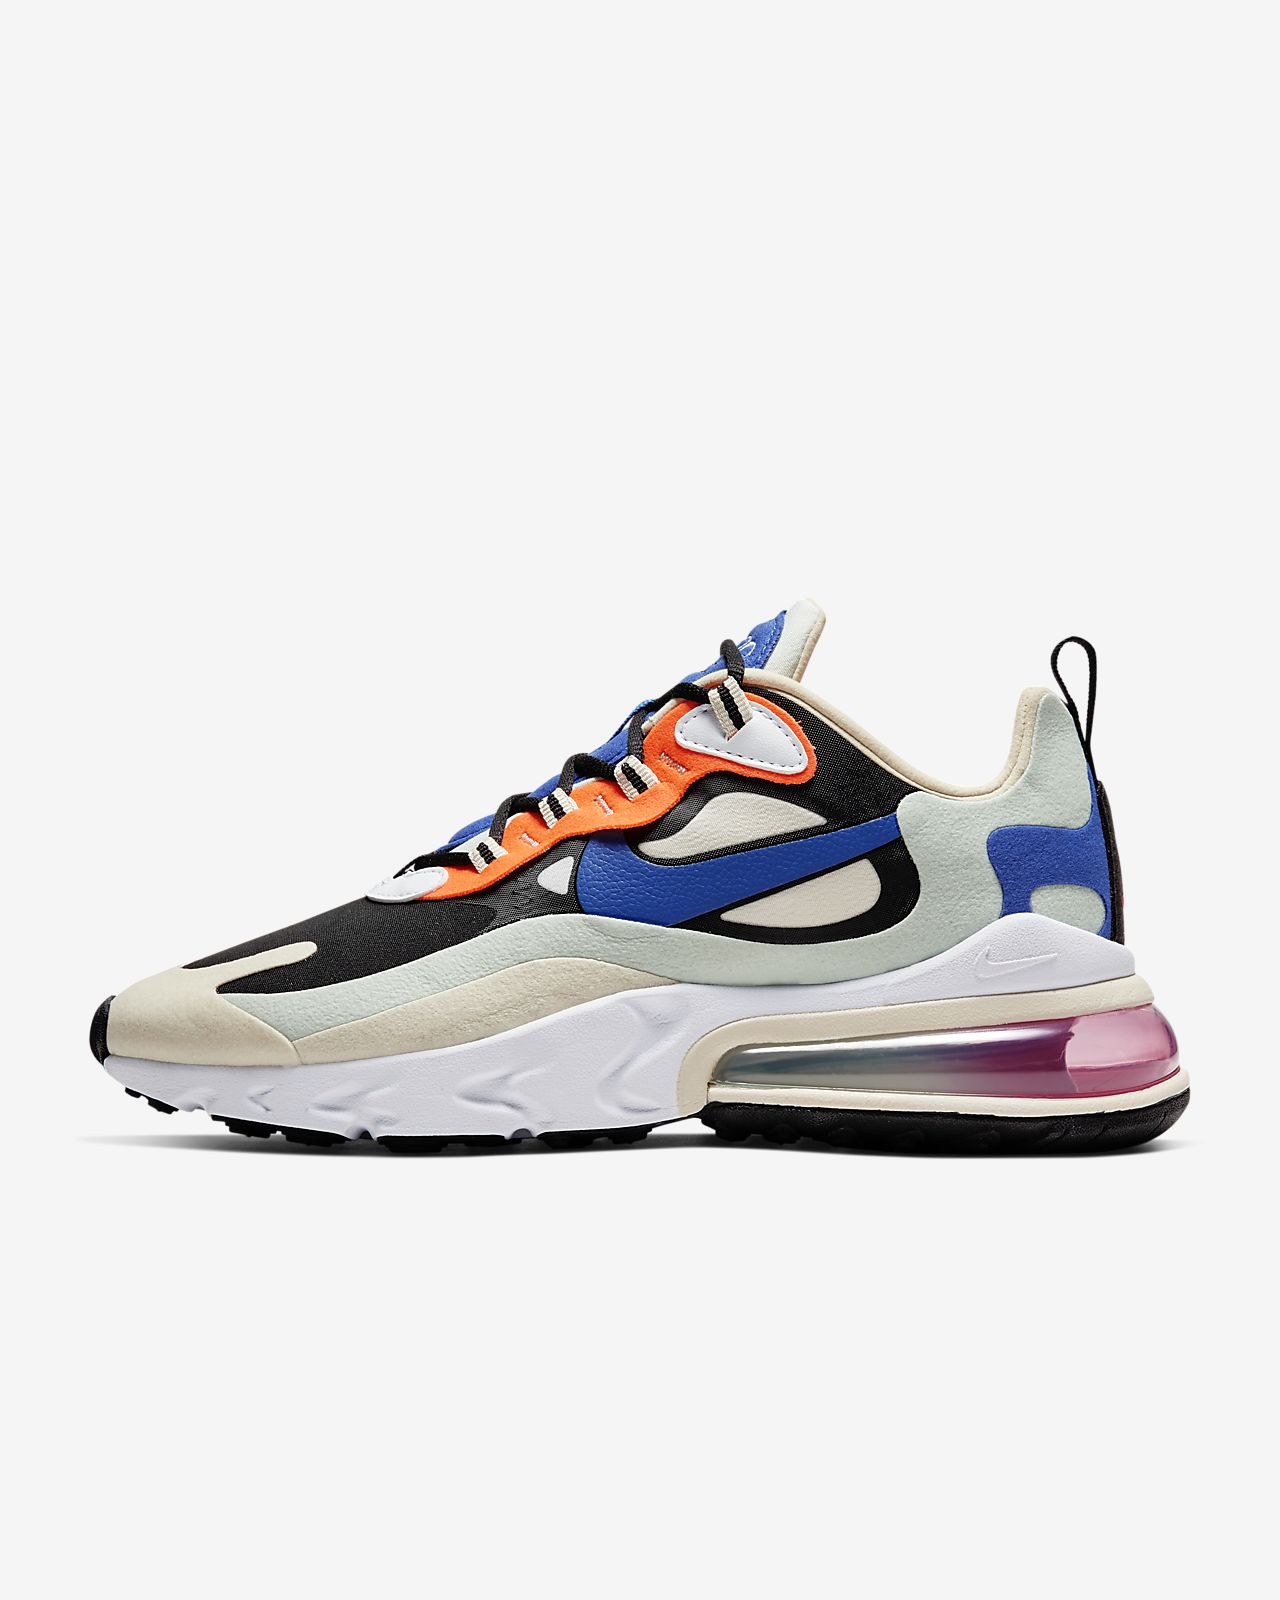 Nike Official Nike Air Max 270 React Women S Shoe Online Store